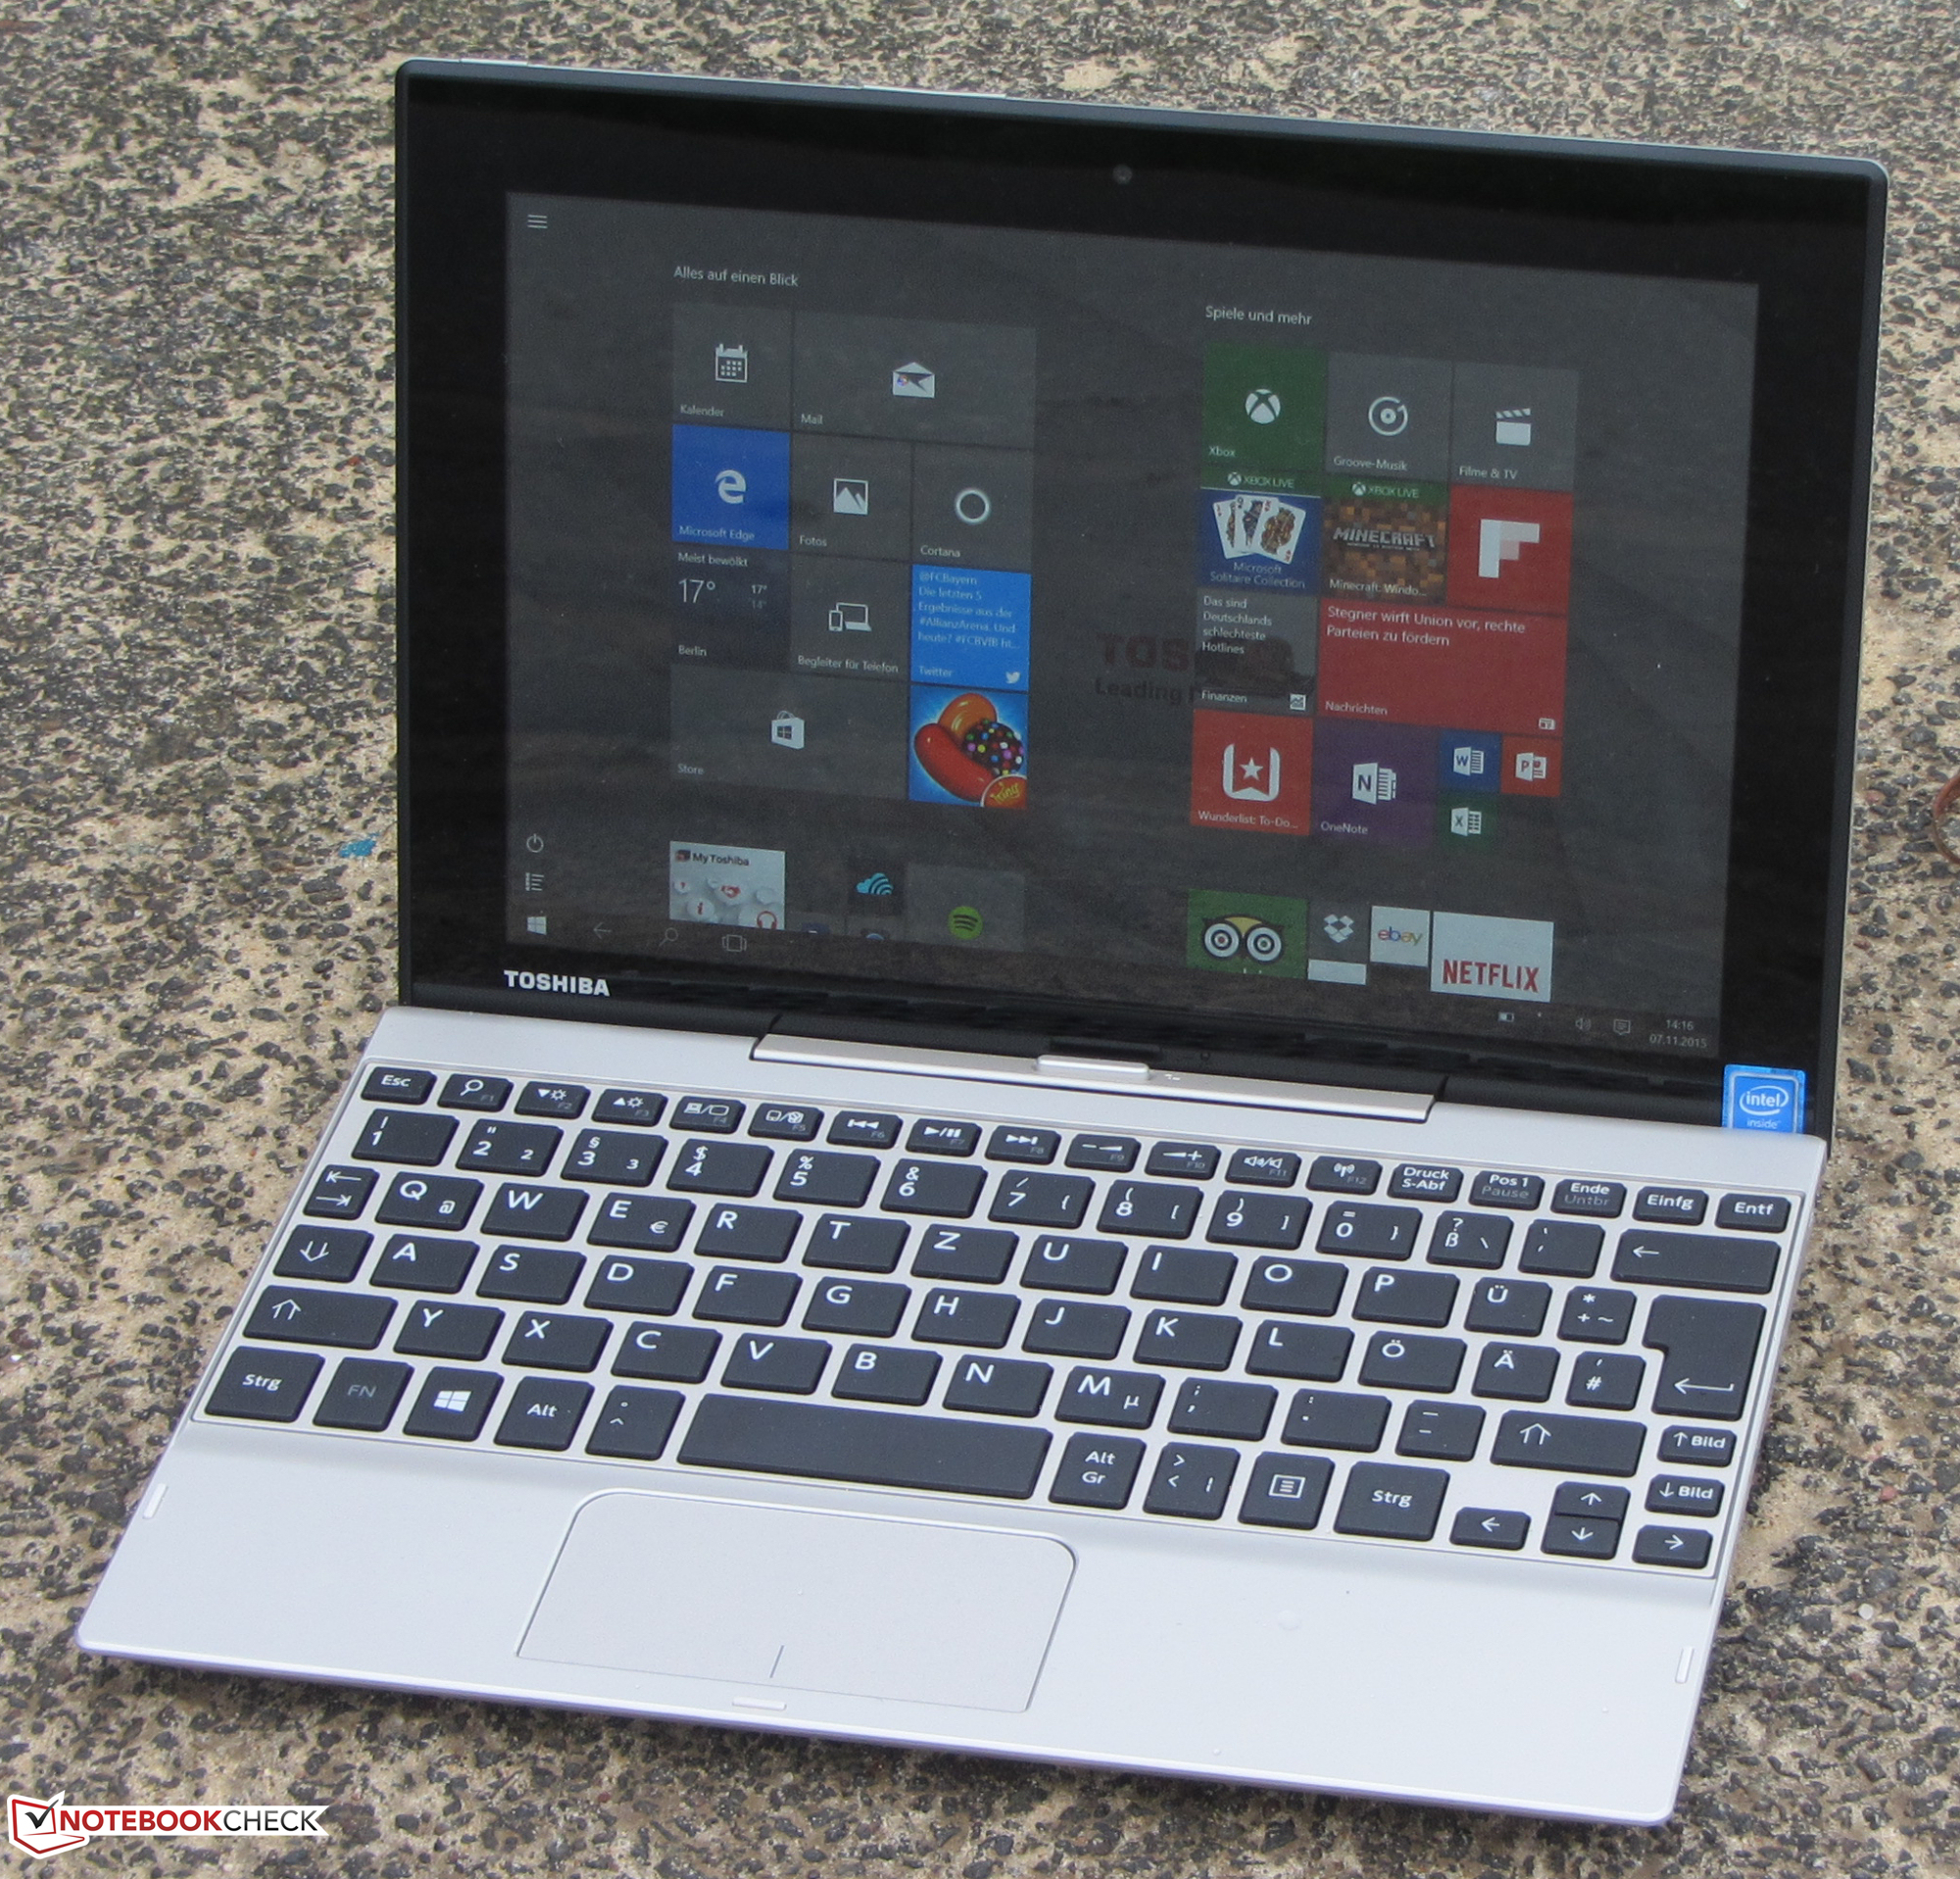 TOSHIBA SATELLITE CLICK LX5W-C BROADCOM BLUETOOTH TREIBER WINDOWS 8